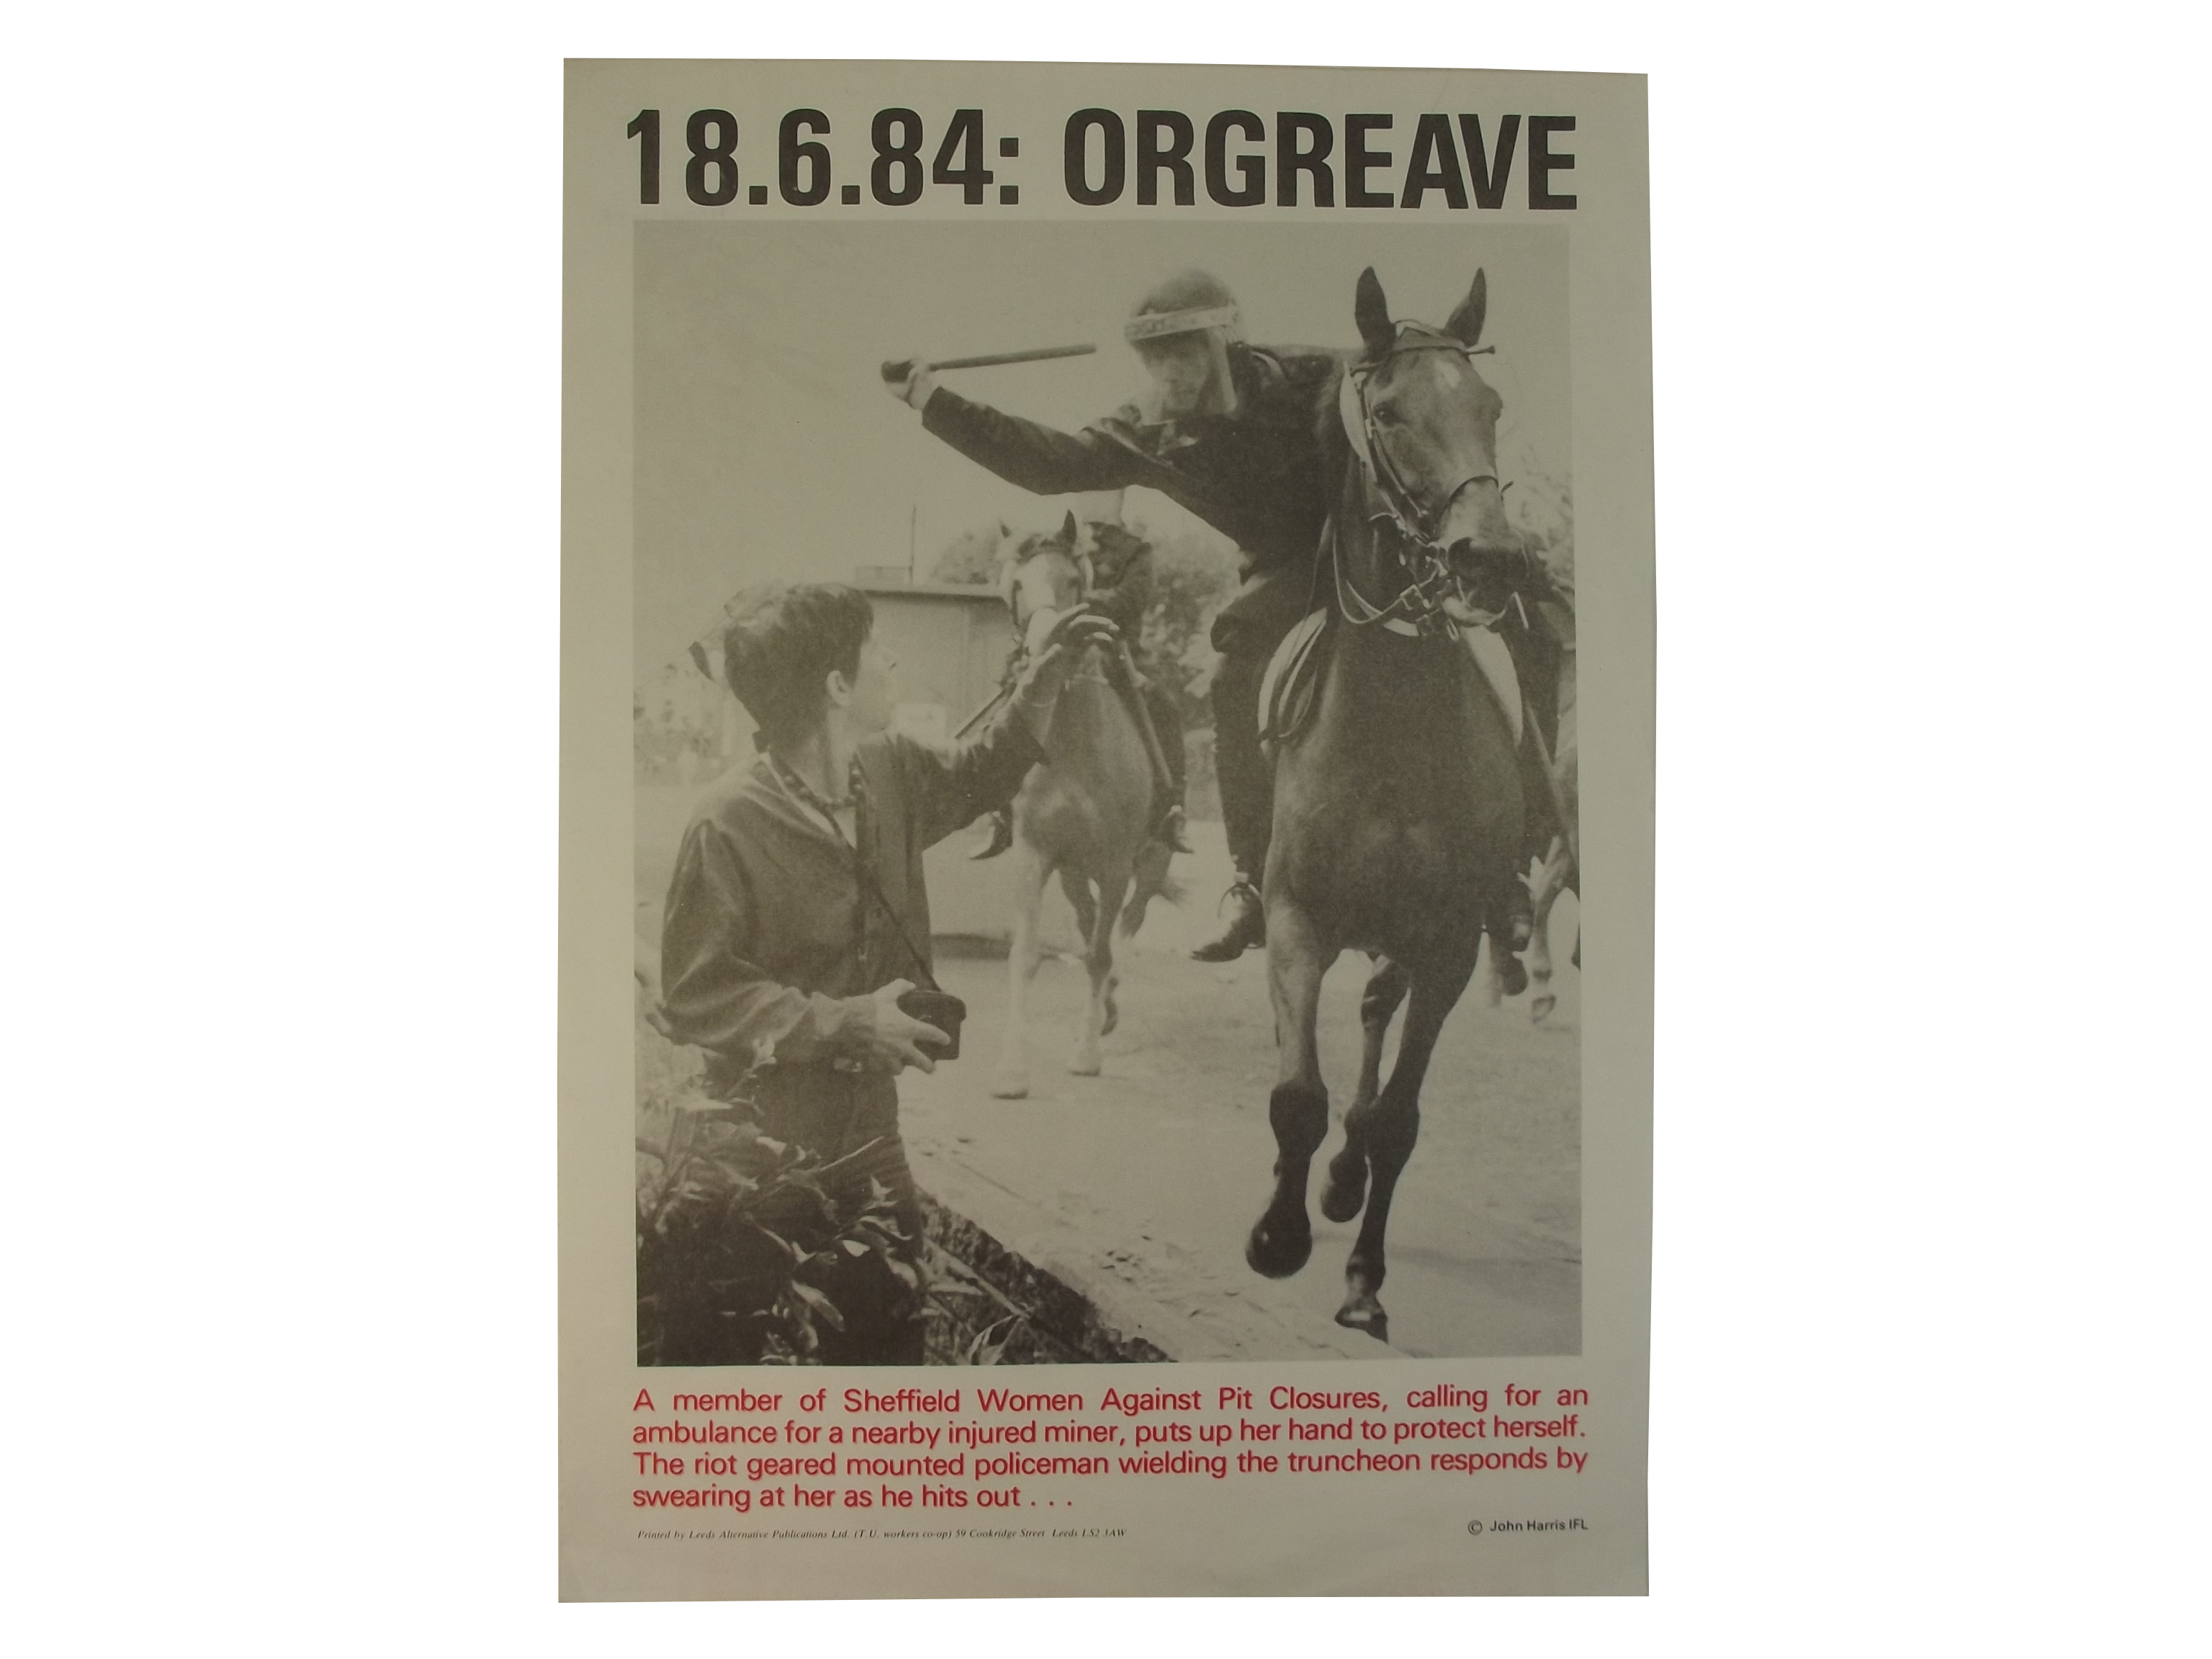 18.6.84: Orgreave